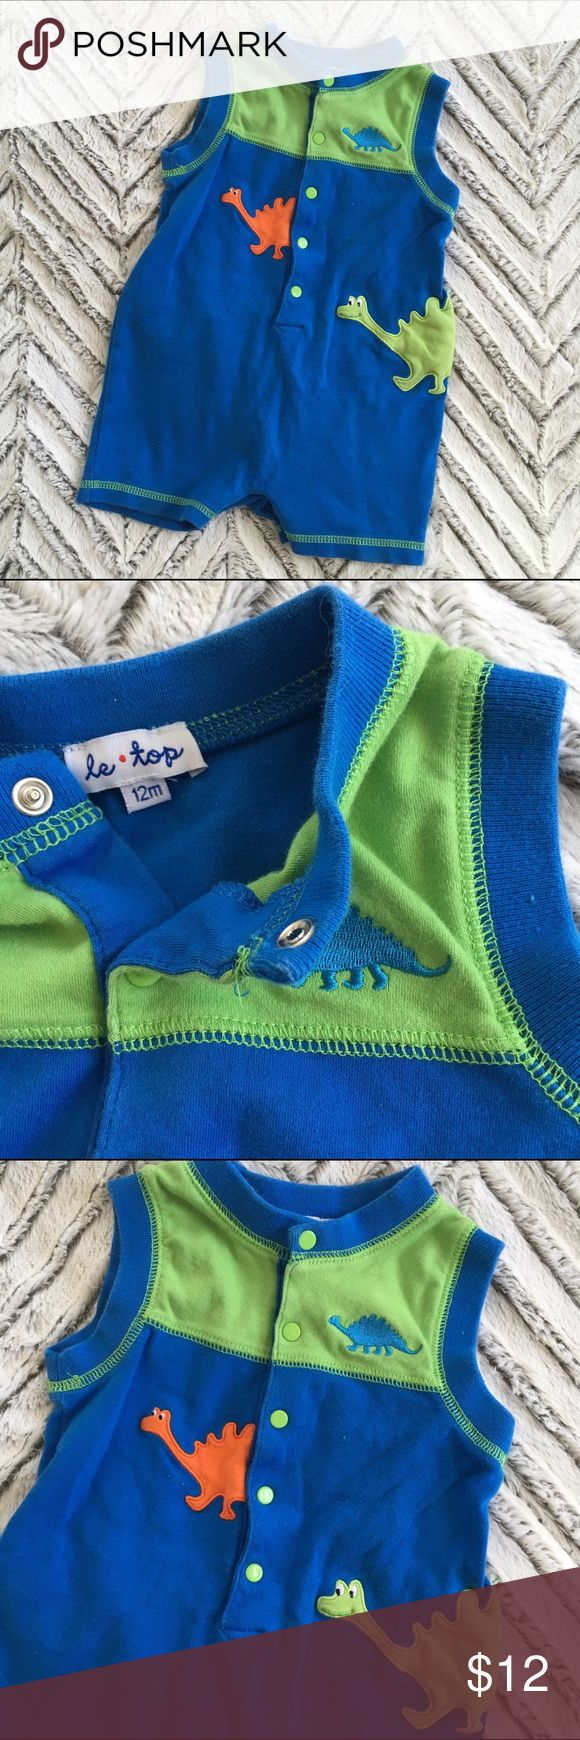 ⭕️ 12m Le Top Blue Dinosaur Romper Le Top blue Embroidered dinosaur romper. Snap closure. In very good pre-owned condition!               2 for $15  3 for $20  4 for $25  5 for $30  ANY kids' and womens' items marked ⭕️ are eligible!  BUNDLE THEM UP > > > MAKE OFFER! Le Top Bottoms Jumpsuits & Rompers